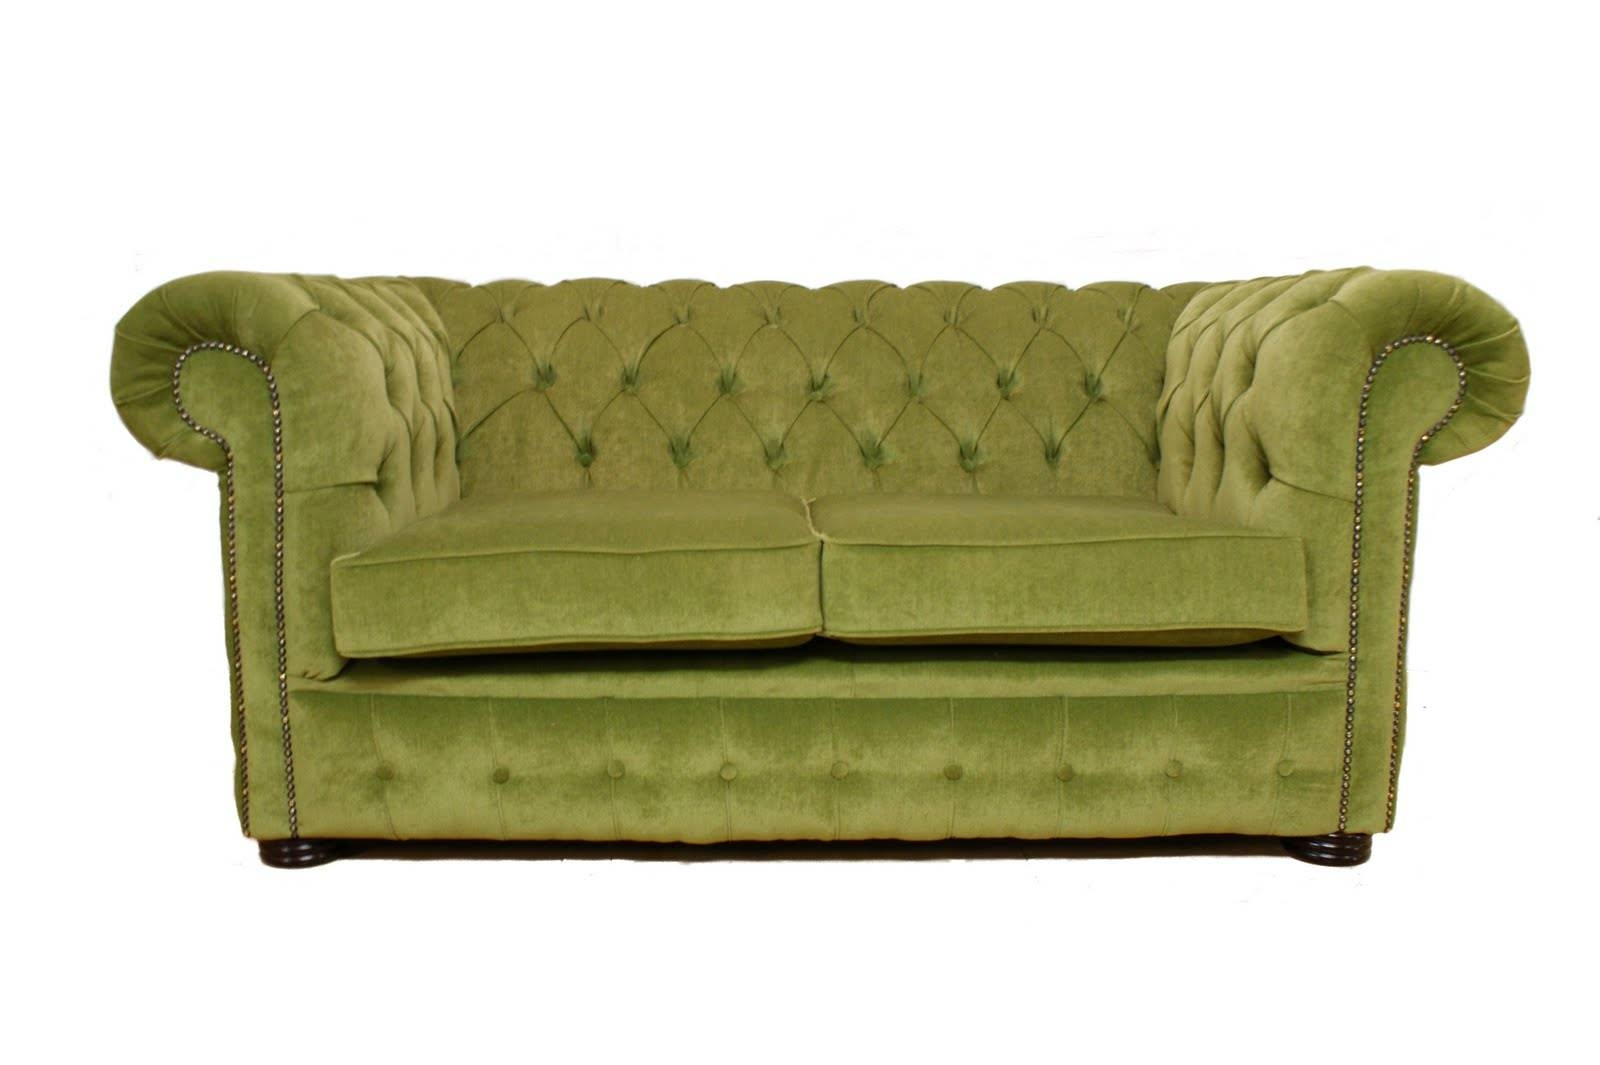 Middle Class Modern: Super Affordable: Chesterfield Sofas Throughout Craigslist Chesterfield Sofas (View 11 of 15)